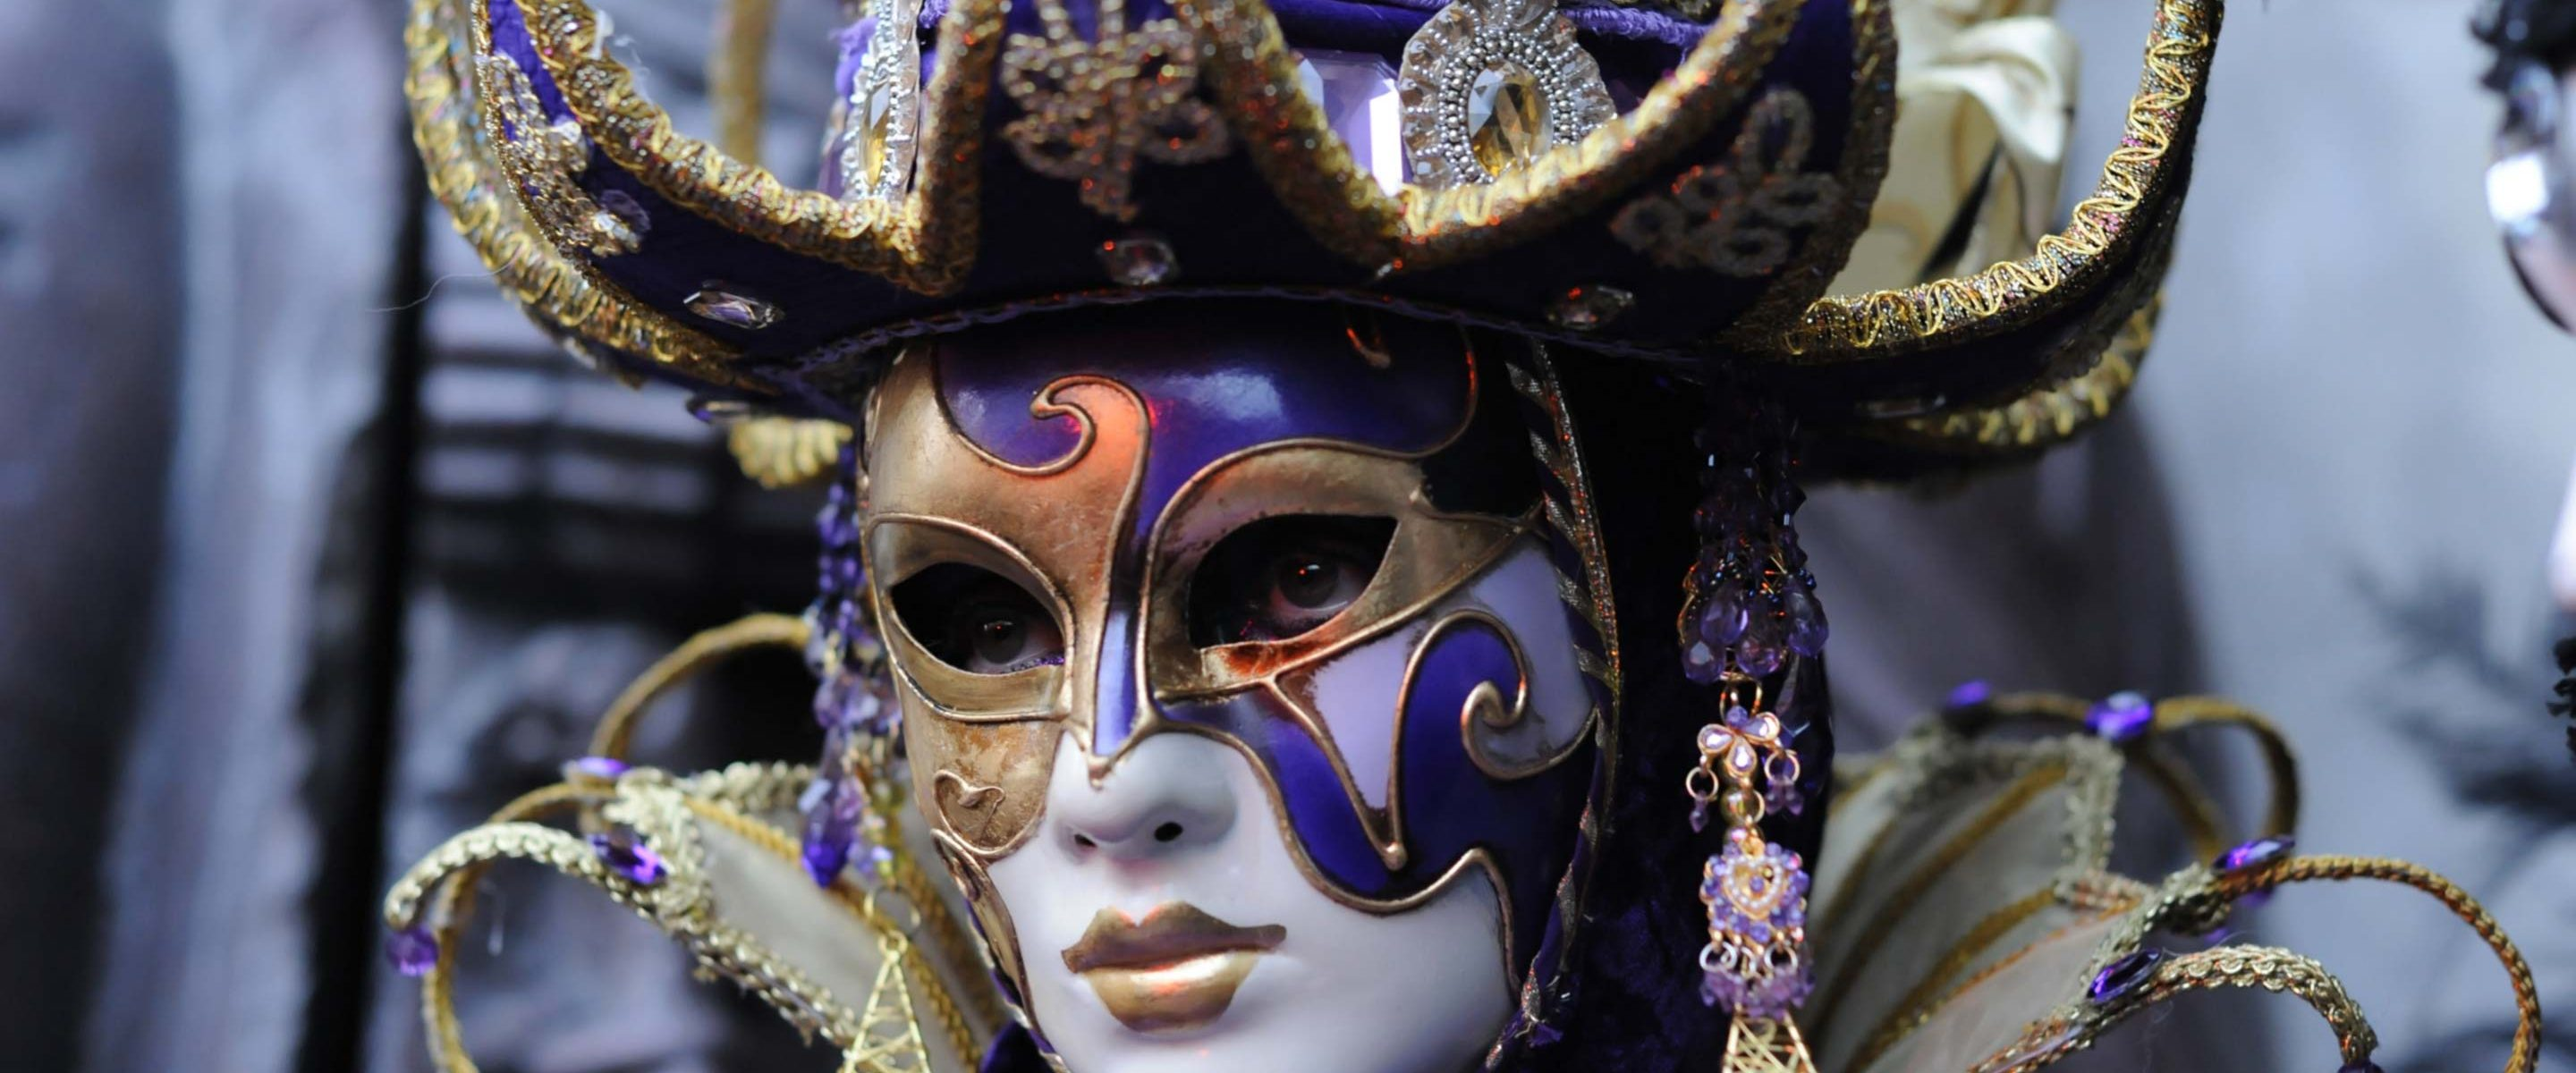 Venice carnival - Premium and Guided Bus Tours to Italy.jpg